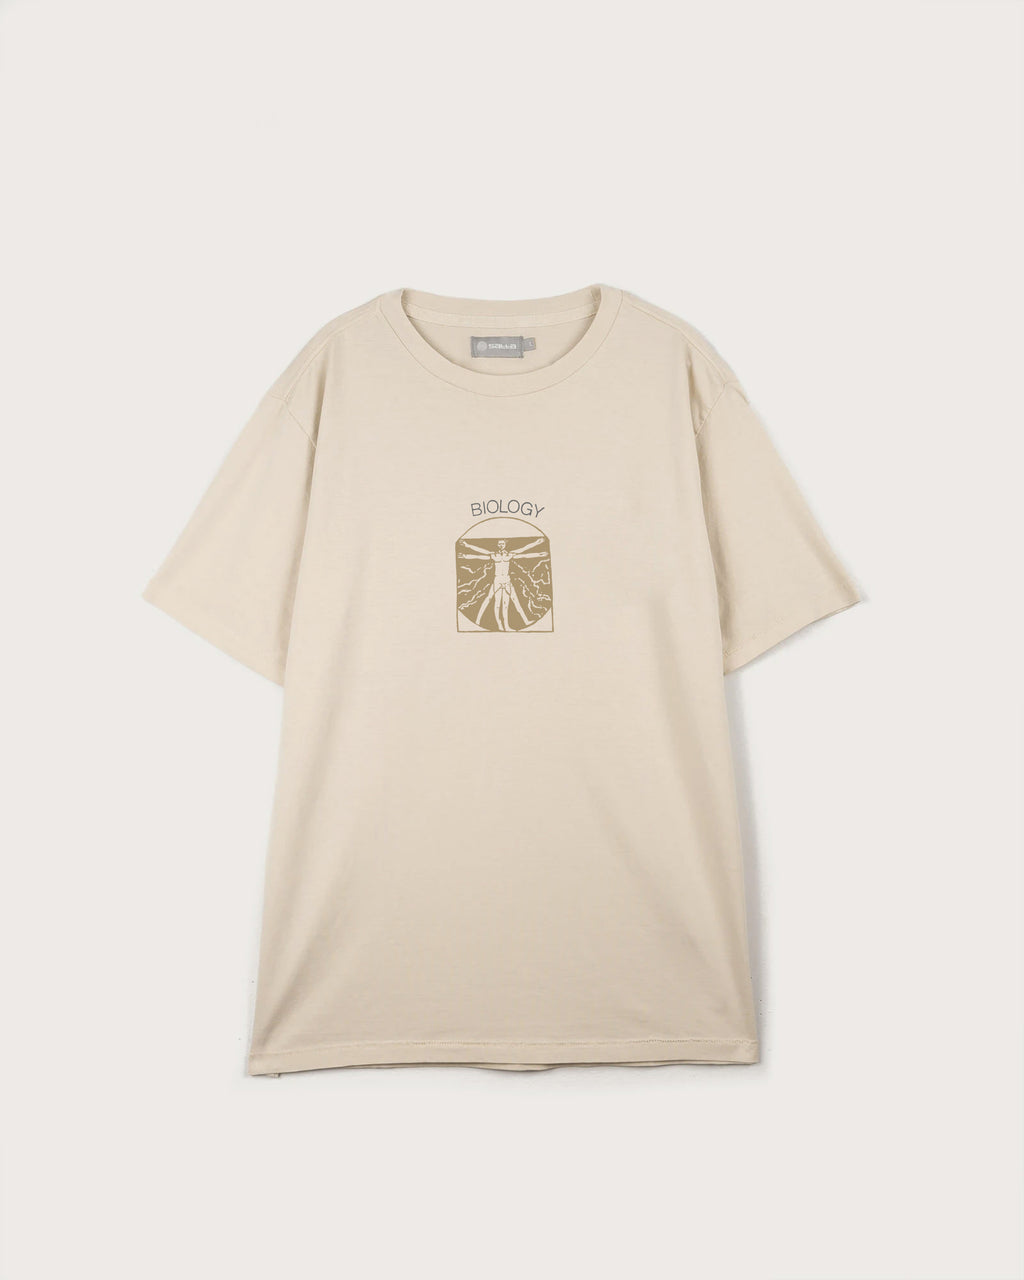 Biology Tee - Calico - SATTA